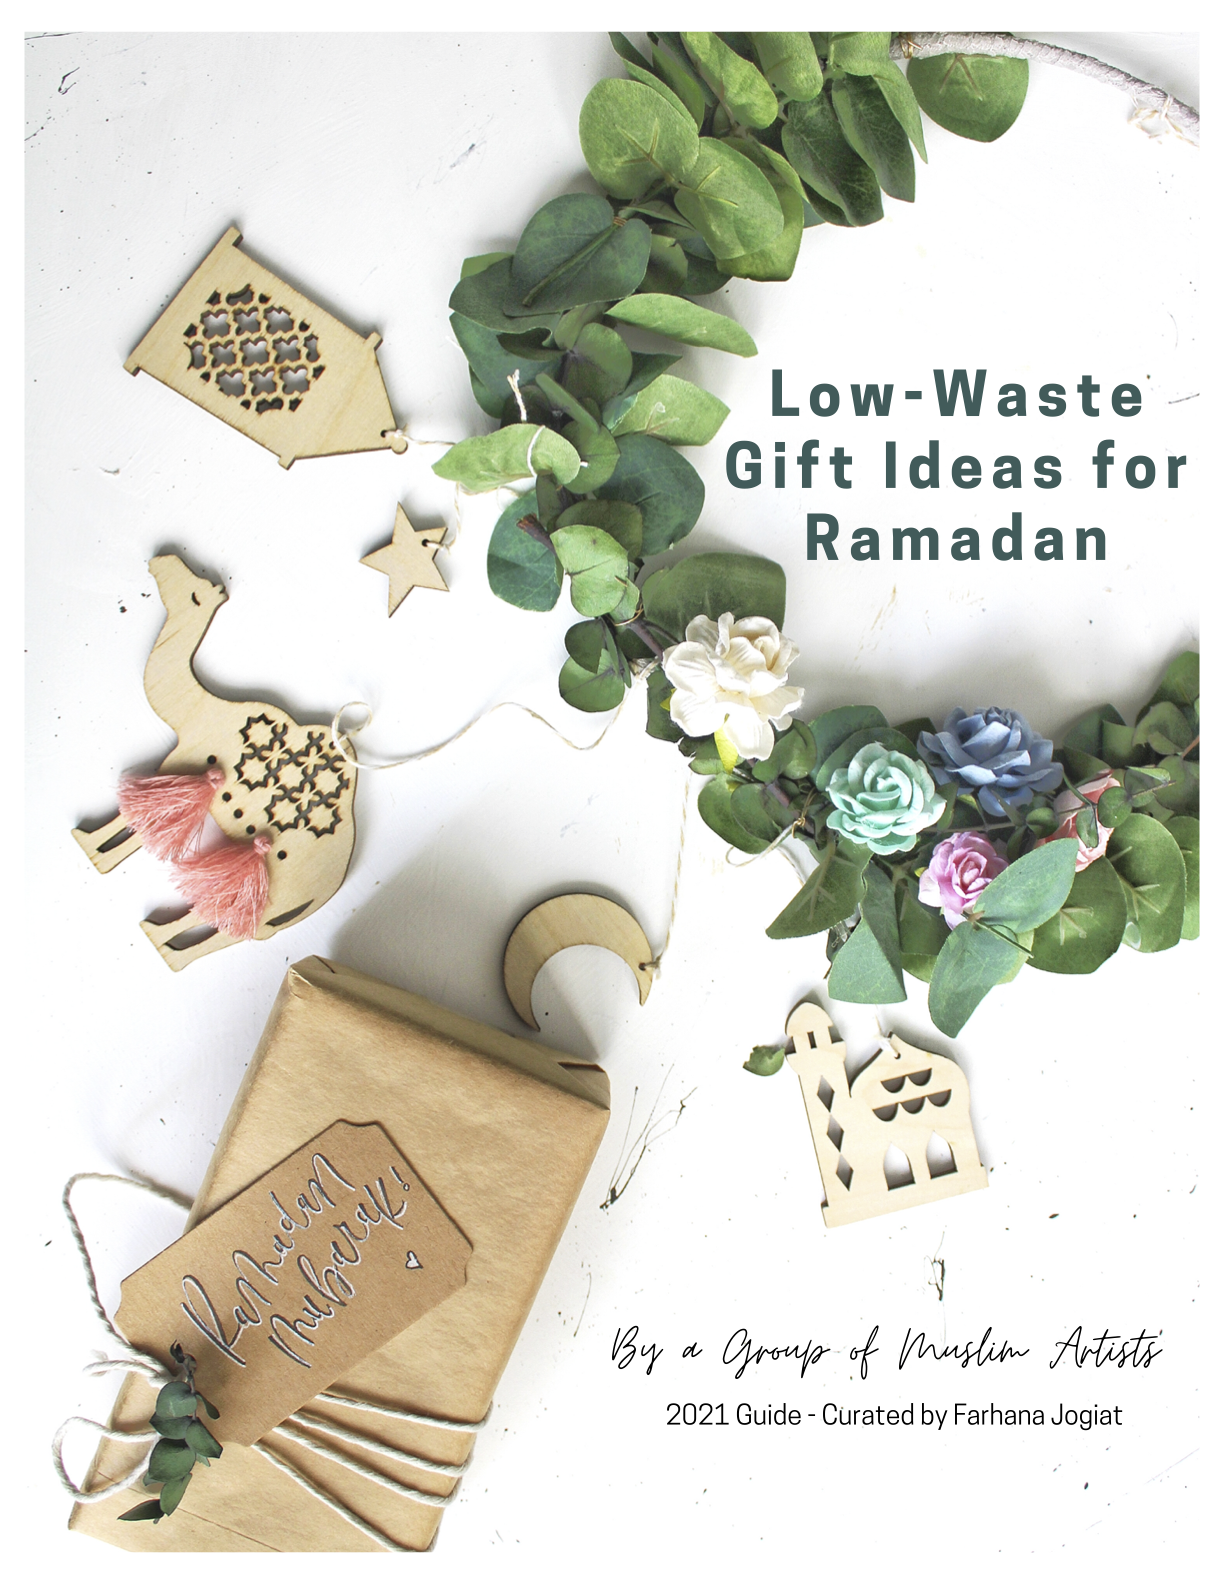 Low-Waste Gift Ideas for Ramadan or Anytime